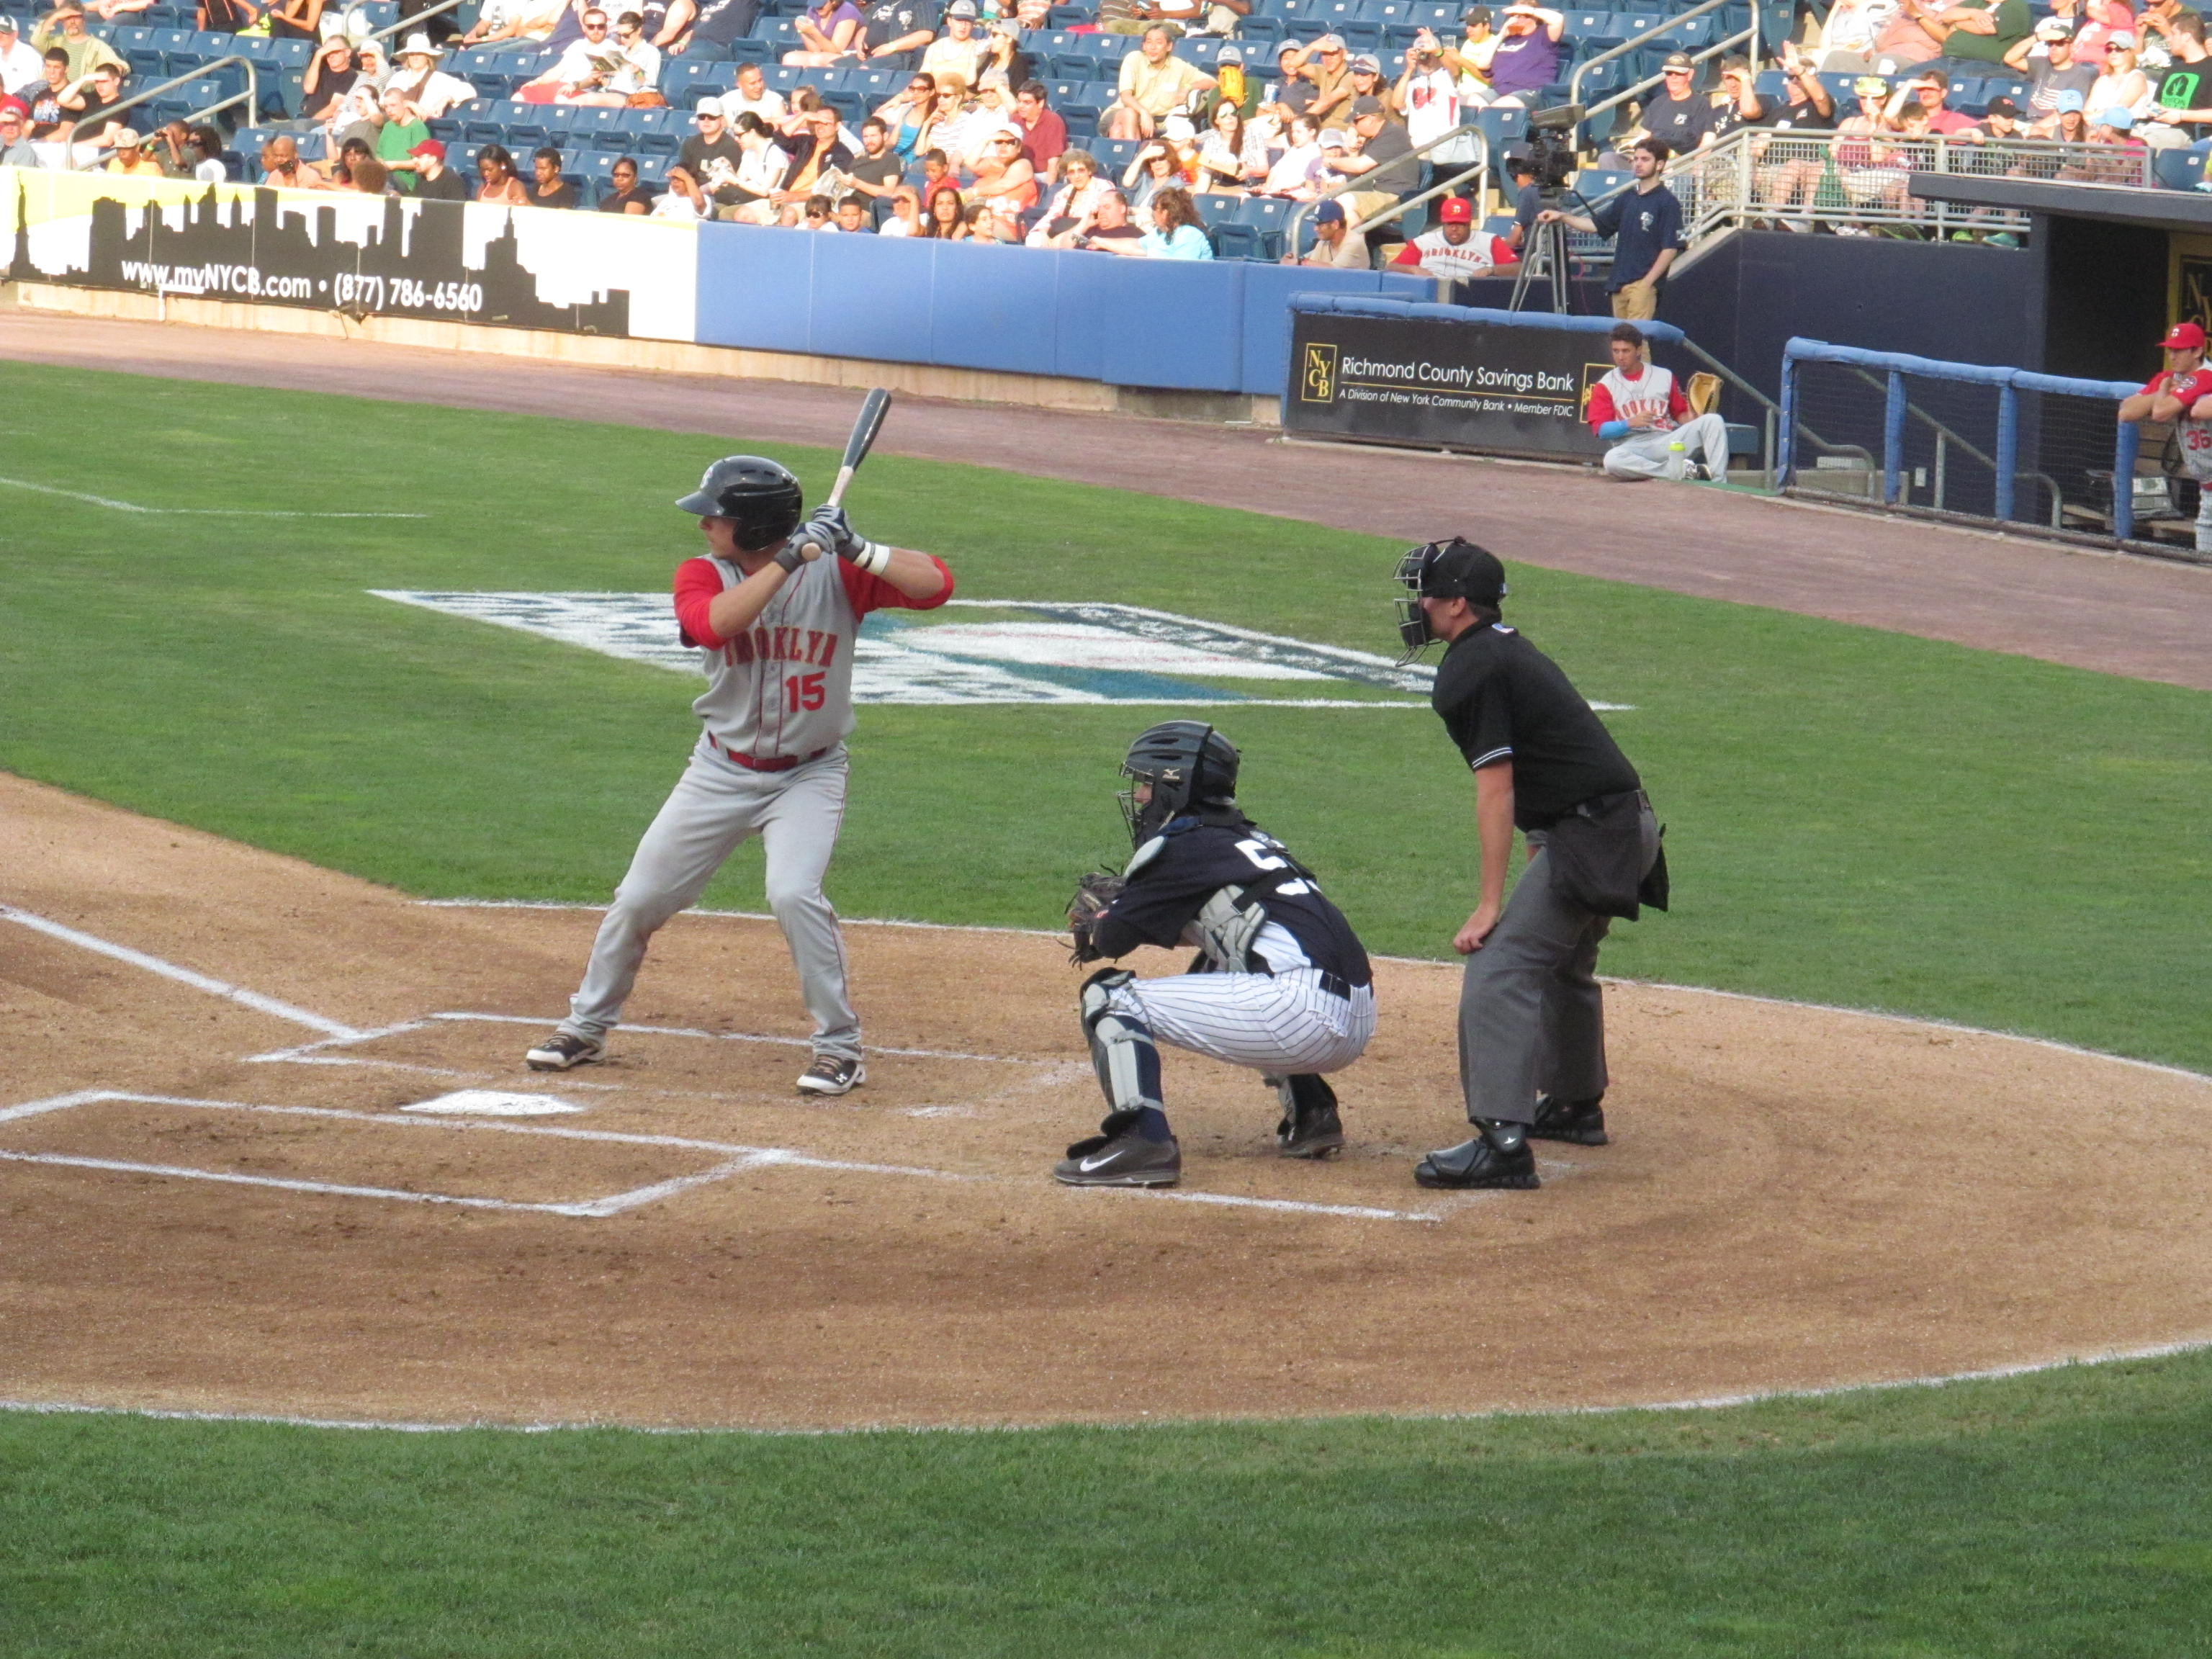 file:brooklyn cyclones vs. staten island yankees - june 28, 2014